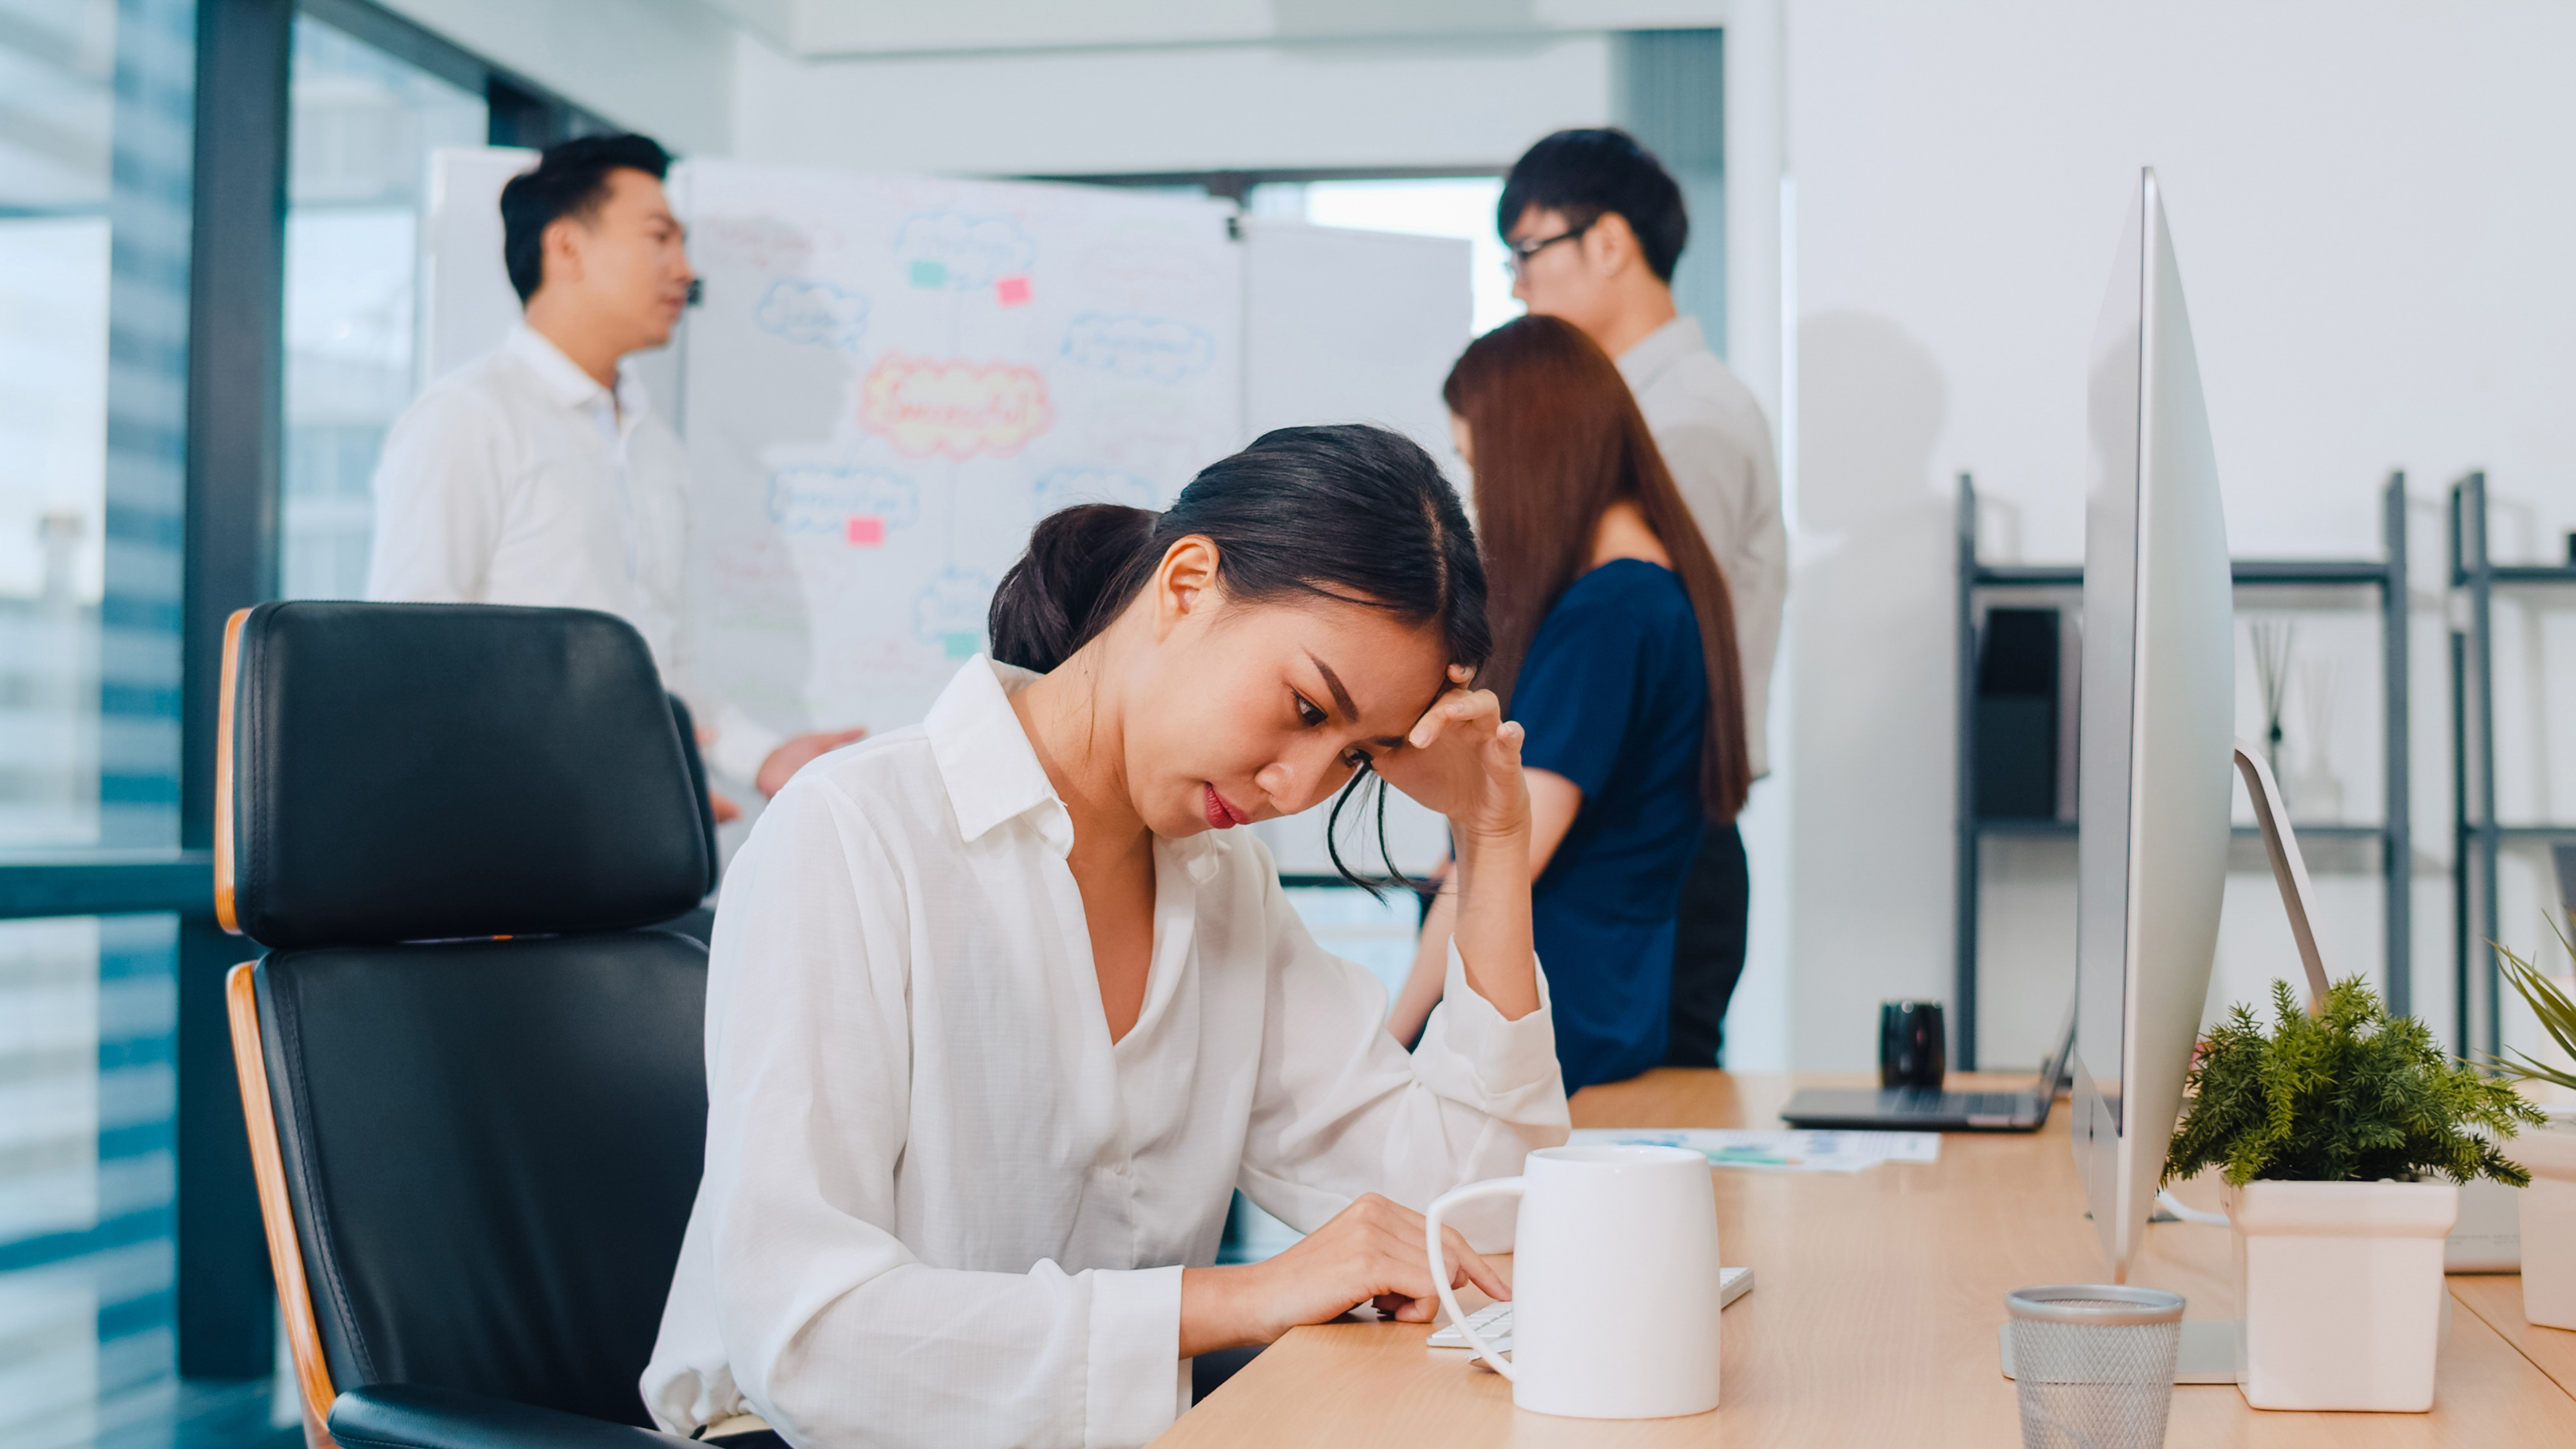 Millennial young Chinese businesswoman working stress out with p